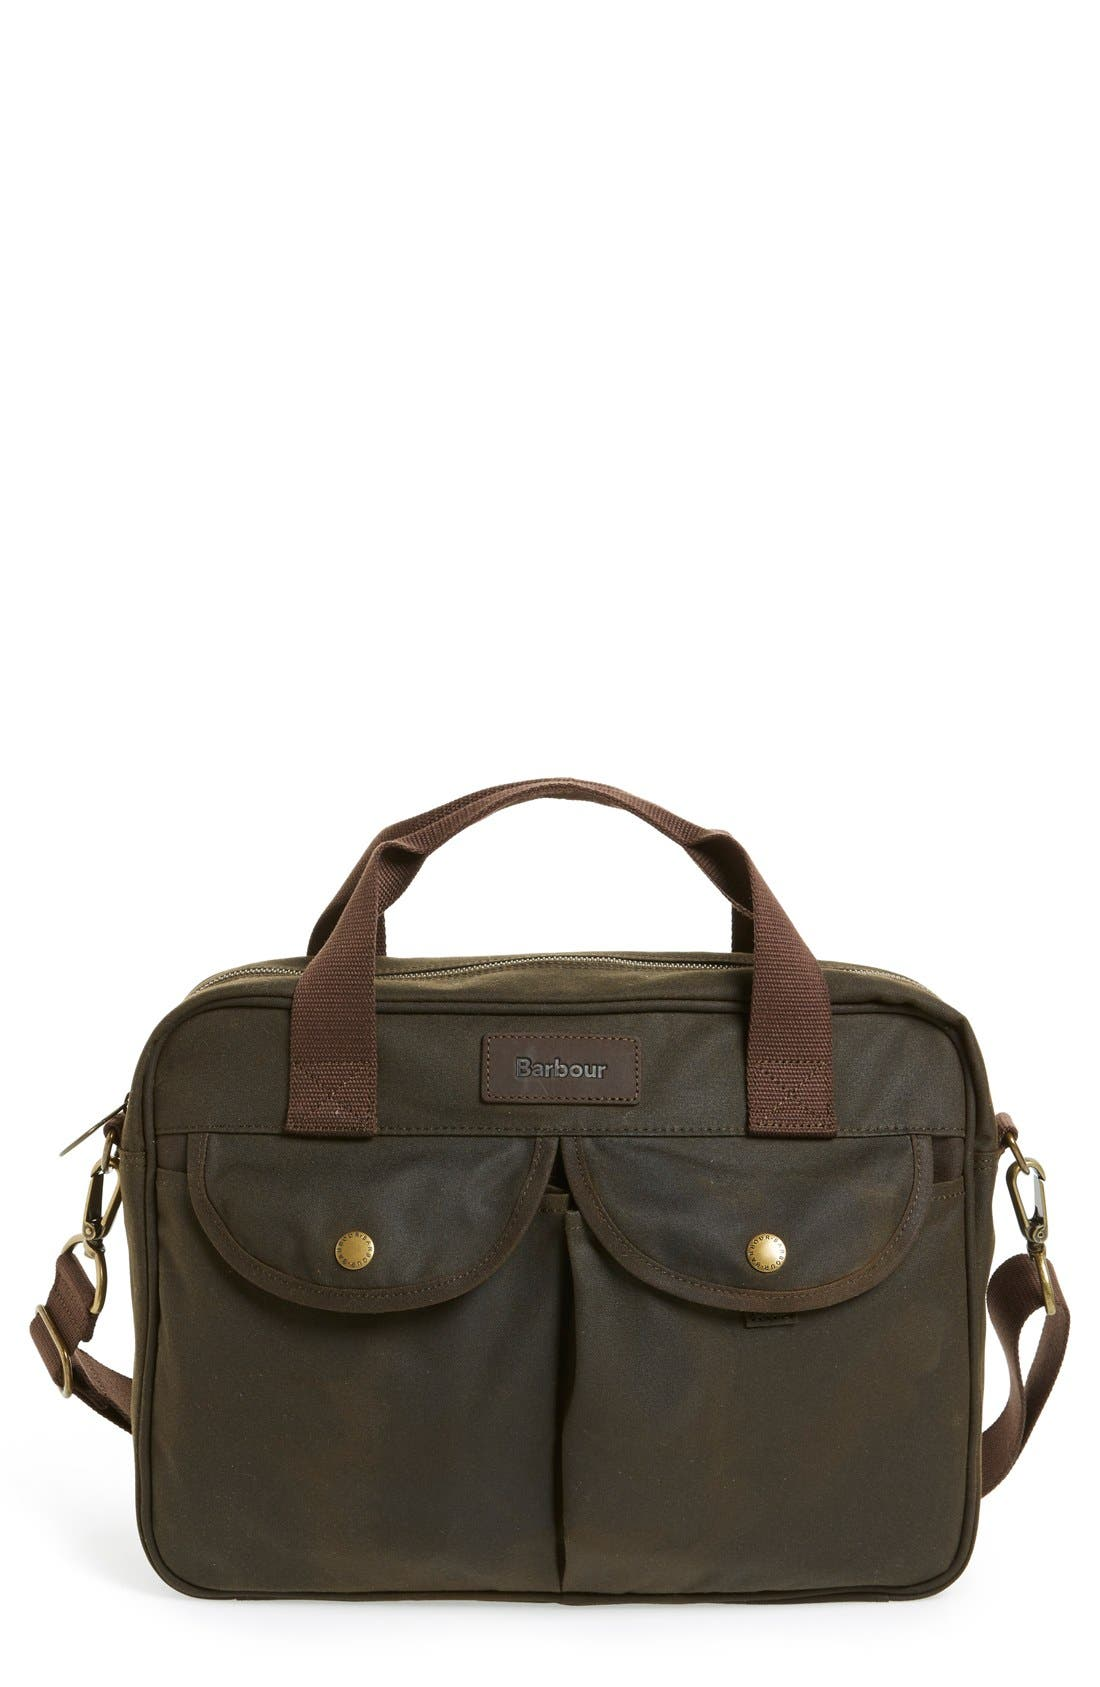 'Longthorpe' Waxed Canvas Laptop Bag,                             Main thumbnail 1, color,                             340